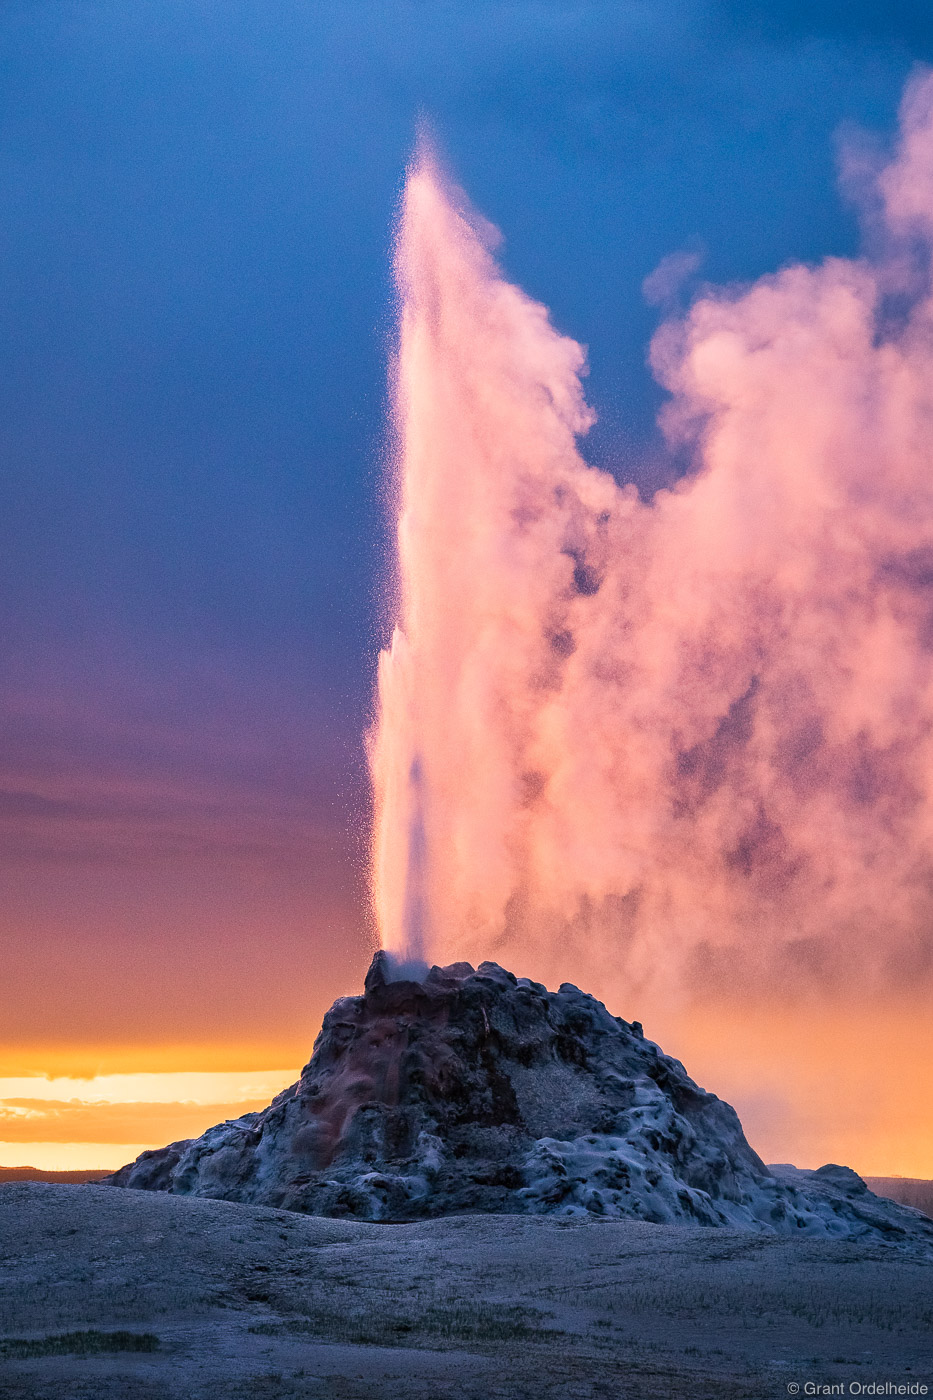 A stormy sunset over an erupting White Dome Geyser along Yellowstone's Firehole Lake Drive.